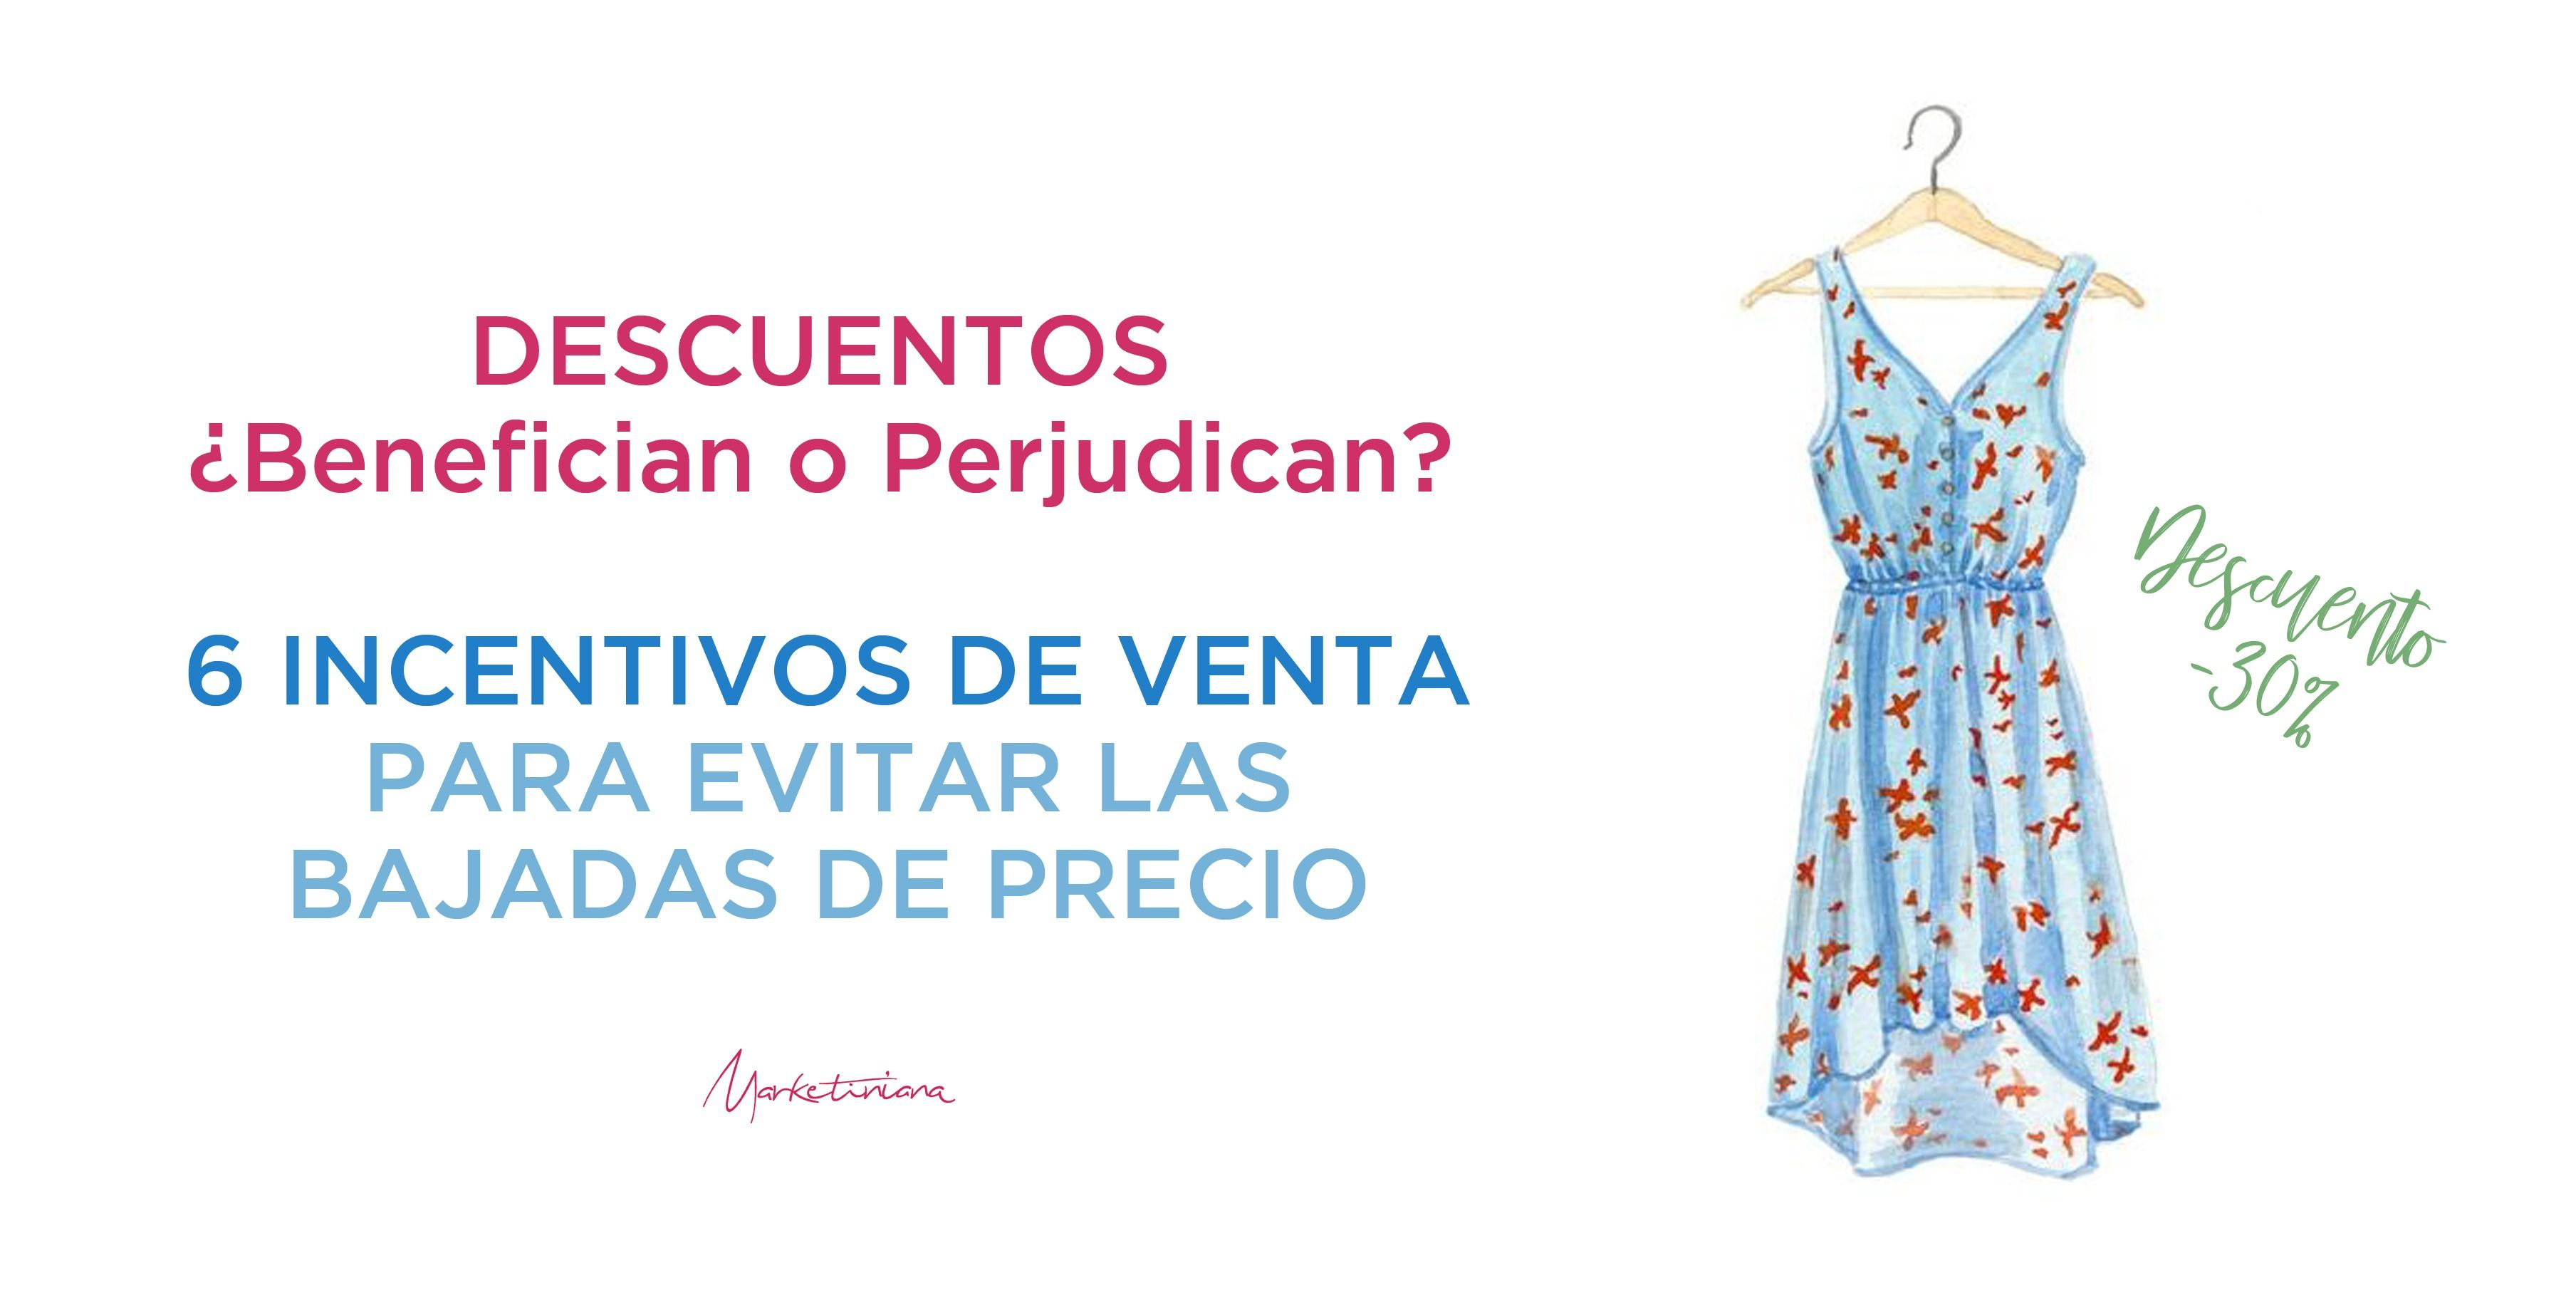 Descuentos-en-ecommerce-de-moda-portada-marketiniana.jpg